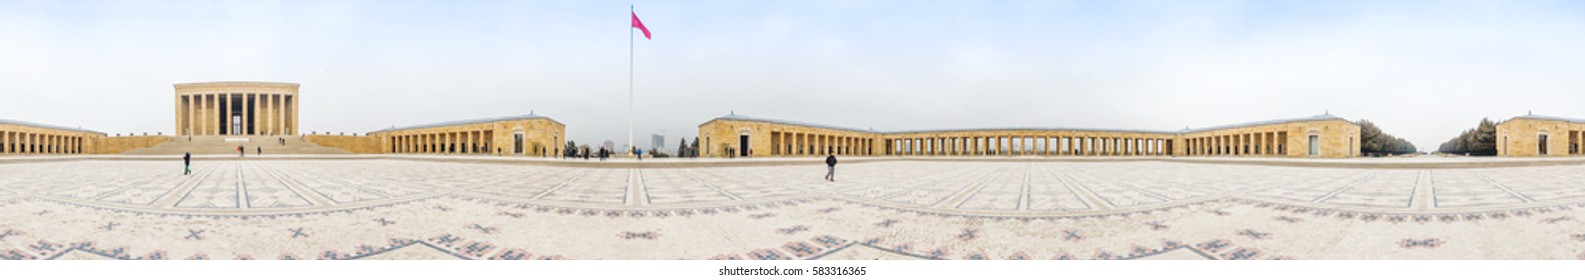 ANKARA, TURKEY - FEBRUARY 14, 2017 : Anitkabir - Mausoleum, the tomb of the founder and first president of the Turkish Republic Mustafa Kemal Ataturk